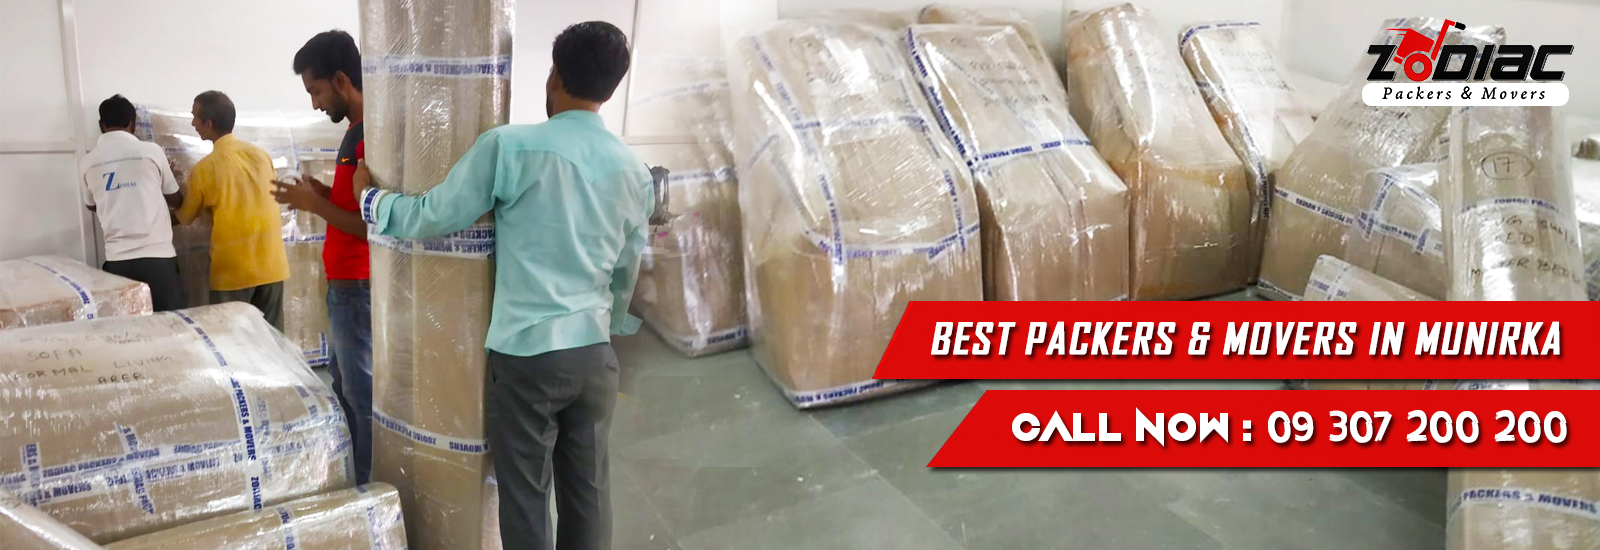 Packers and Movers in Munirka